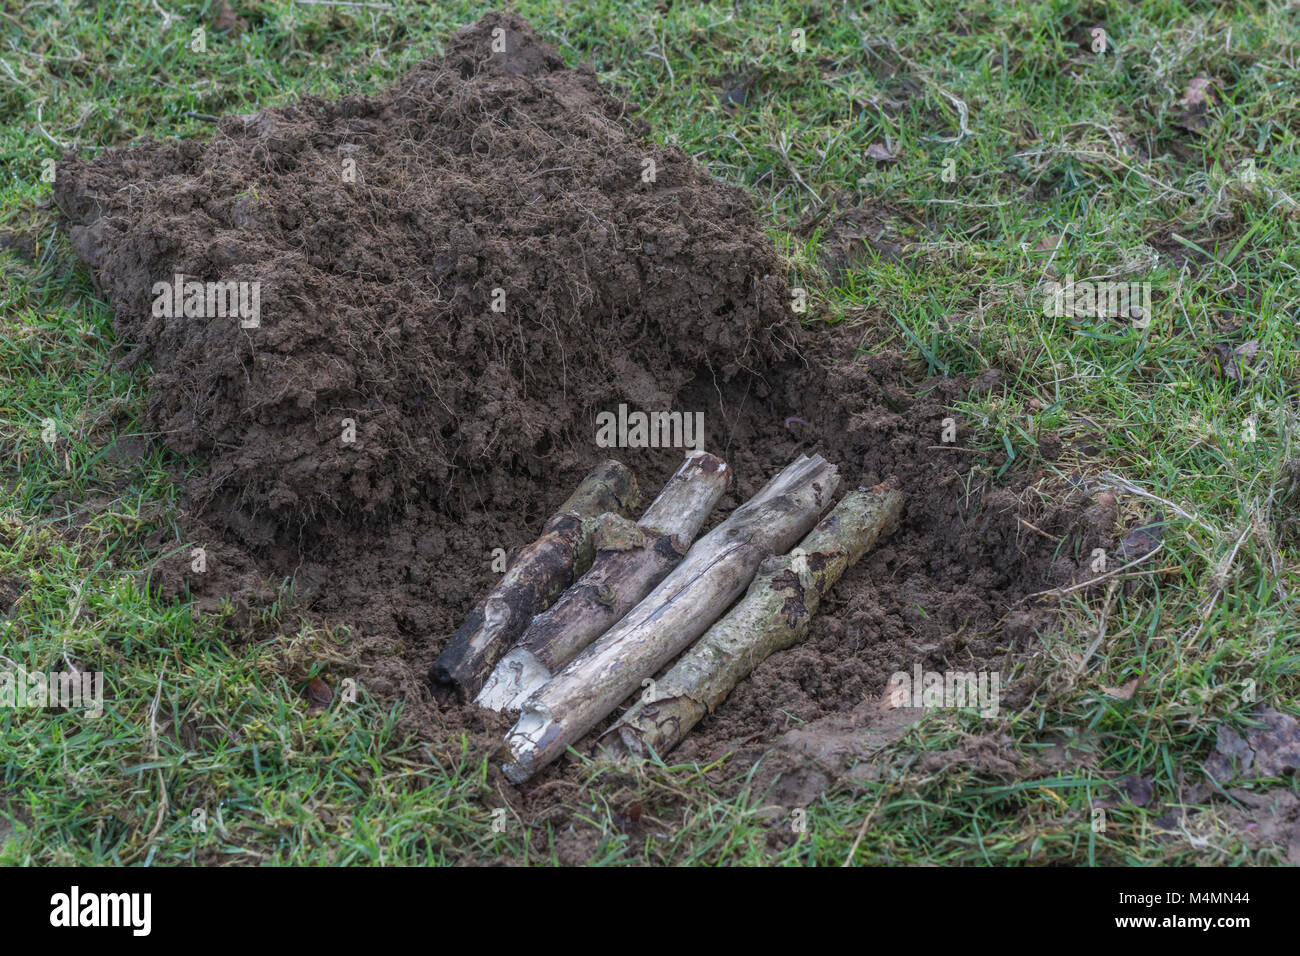 Grass cut away to form shallow pit for a covert survival fire which 'leaves no trace'. Wood base layer added - Stock Image